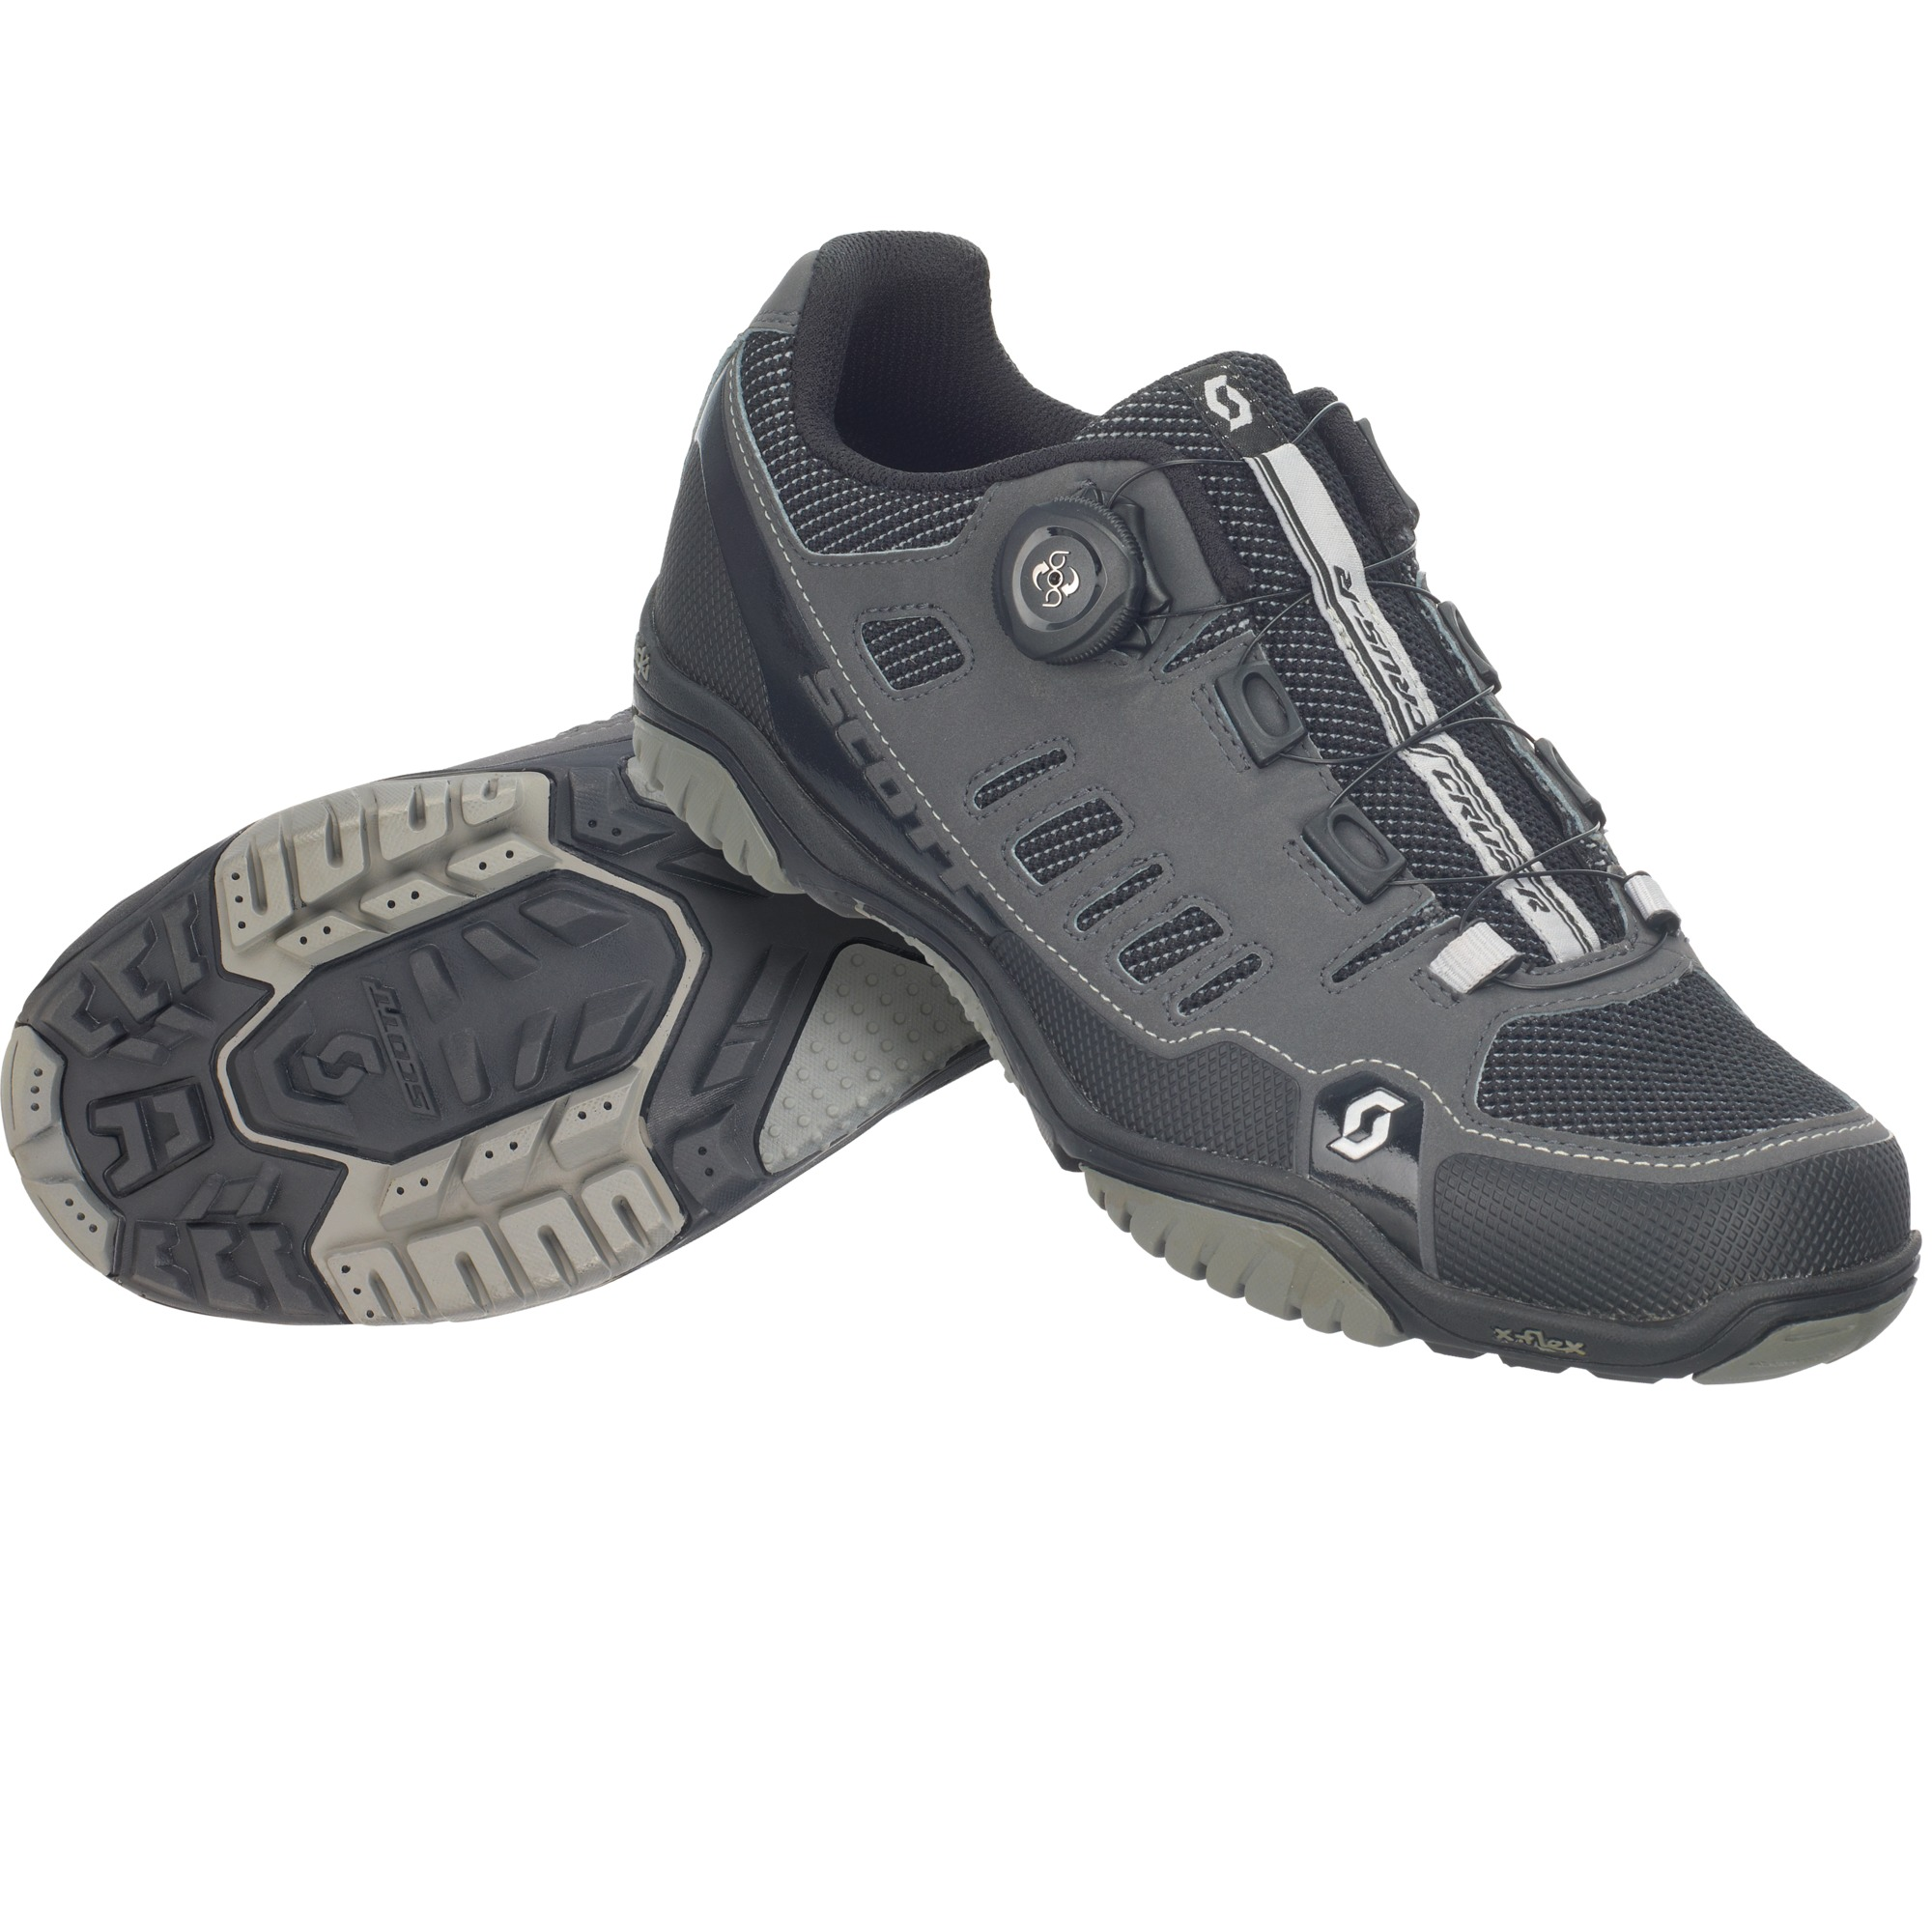 Scott Crus-r Boa | 45 | anthracite black